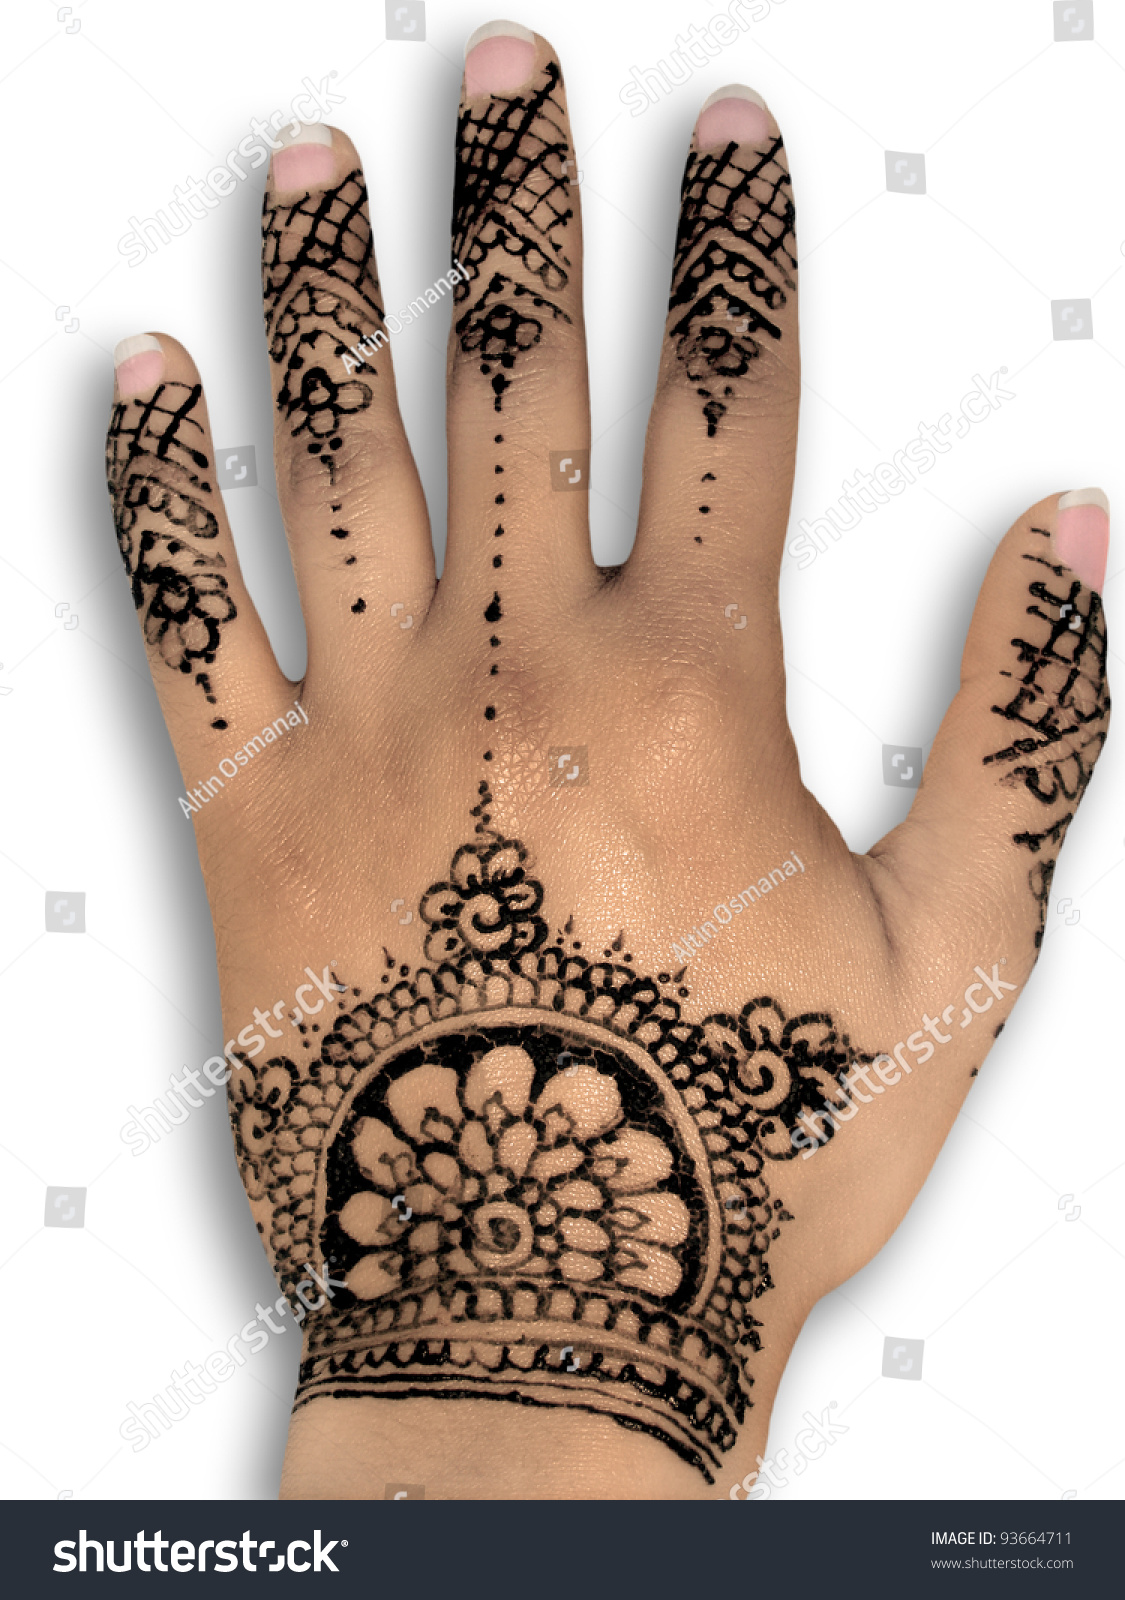 Henna tattoo body art white background stock photo for Henna body tattoo